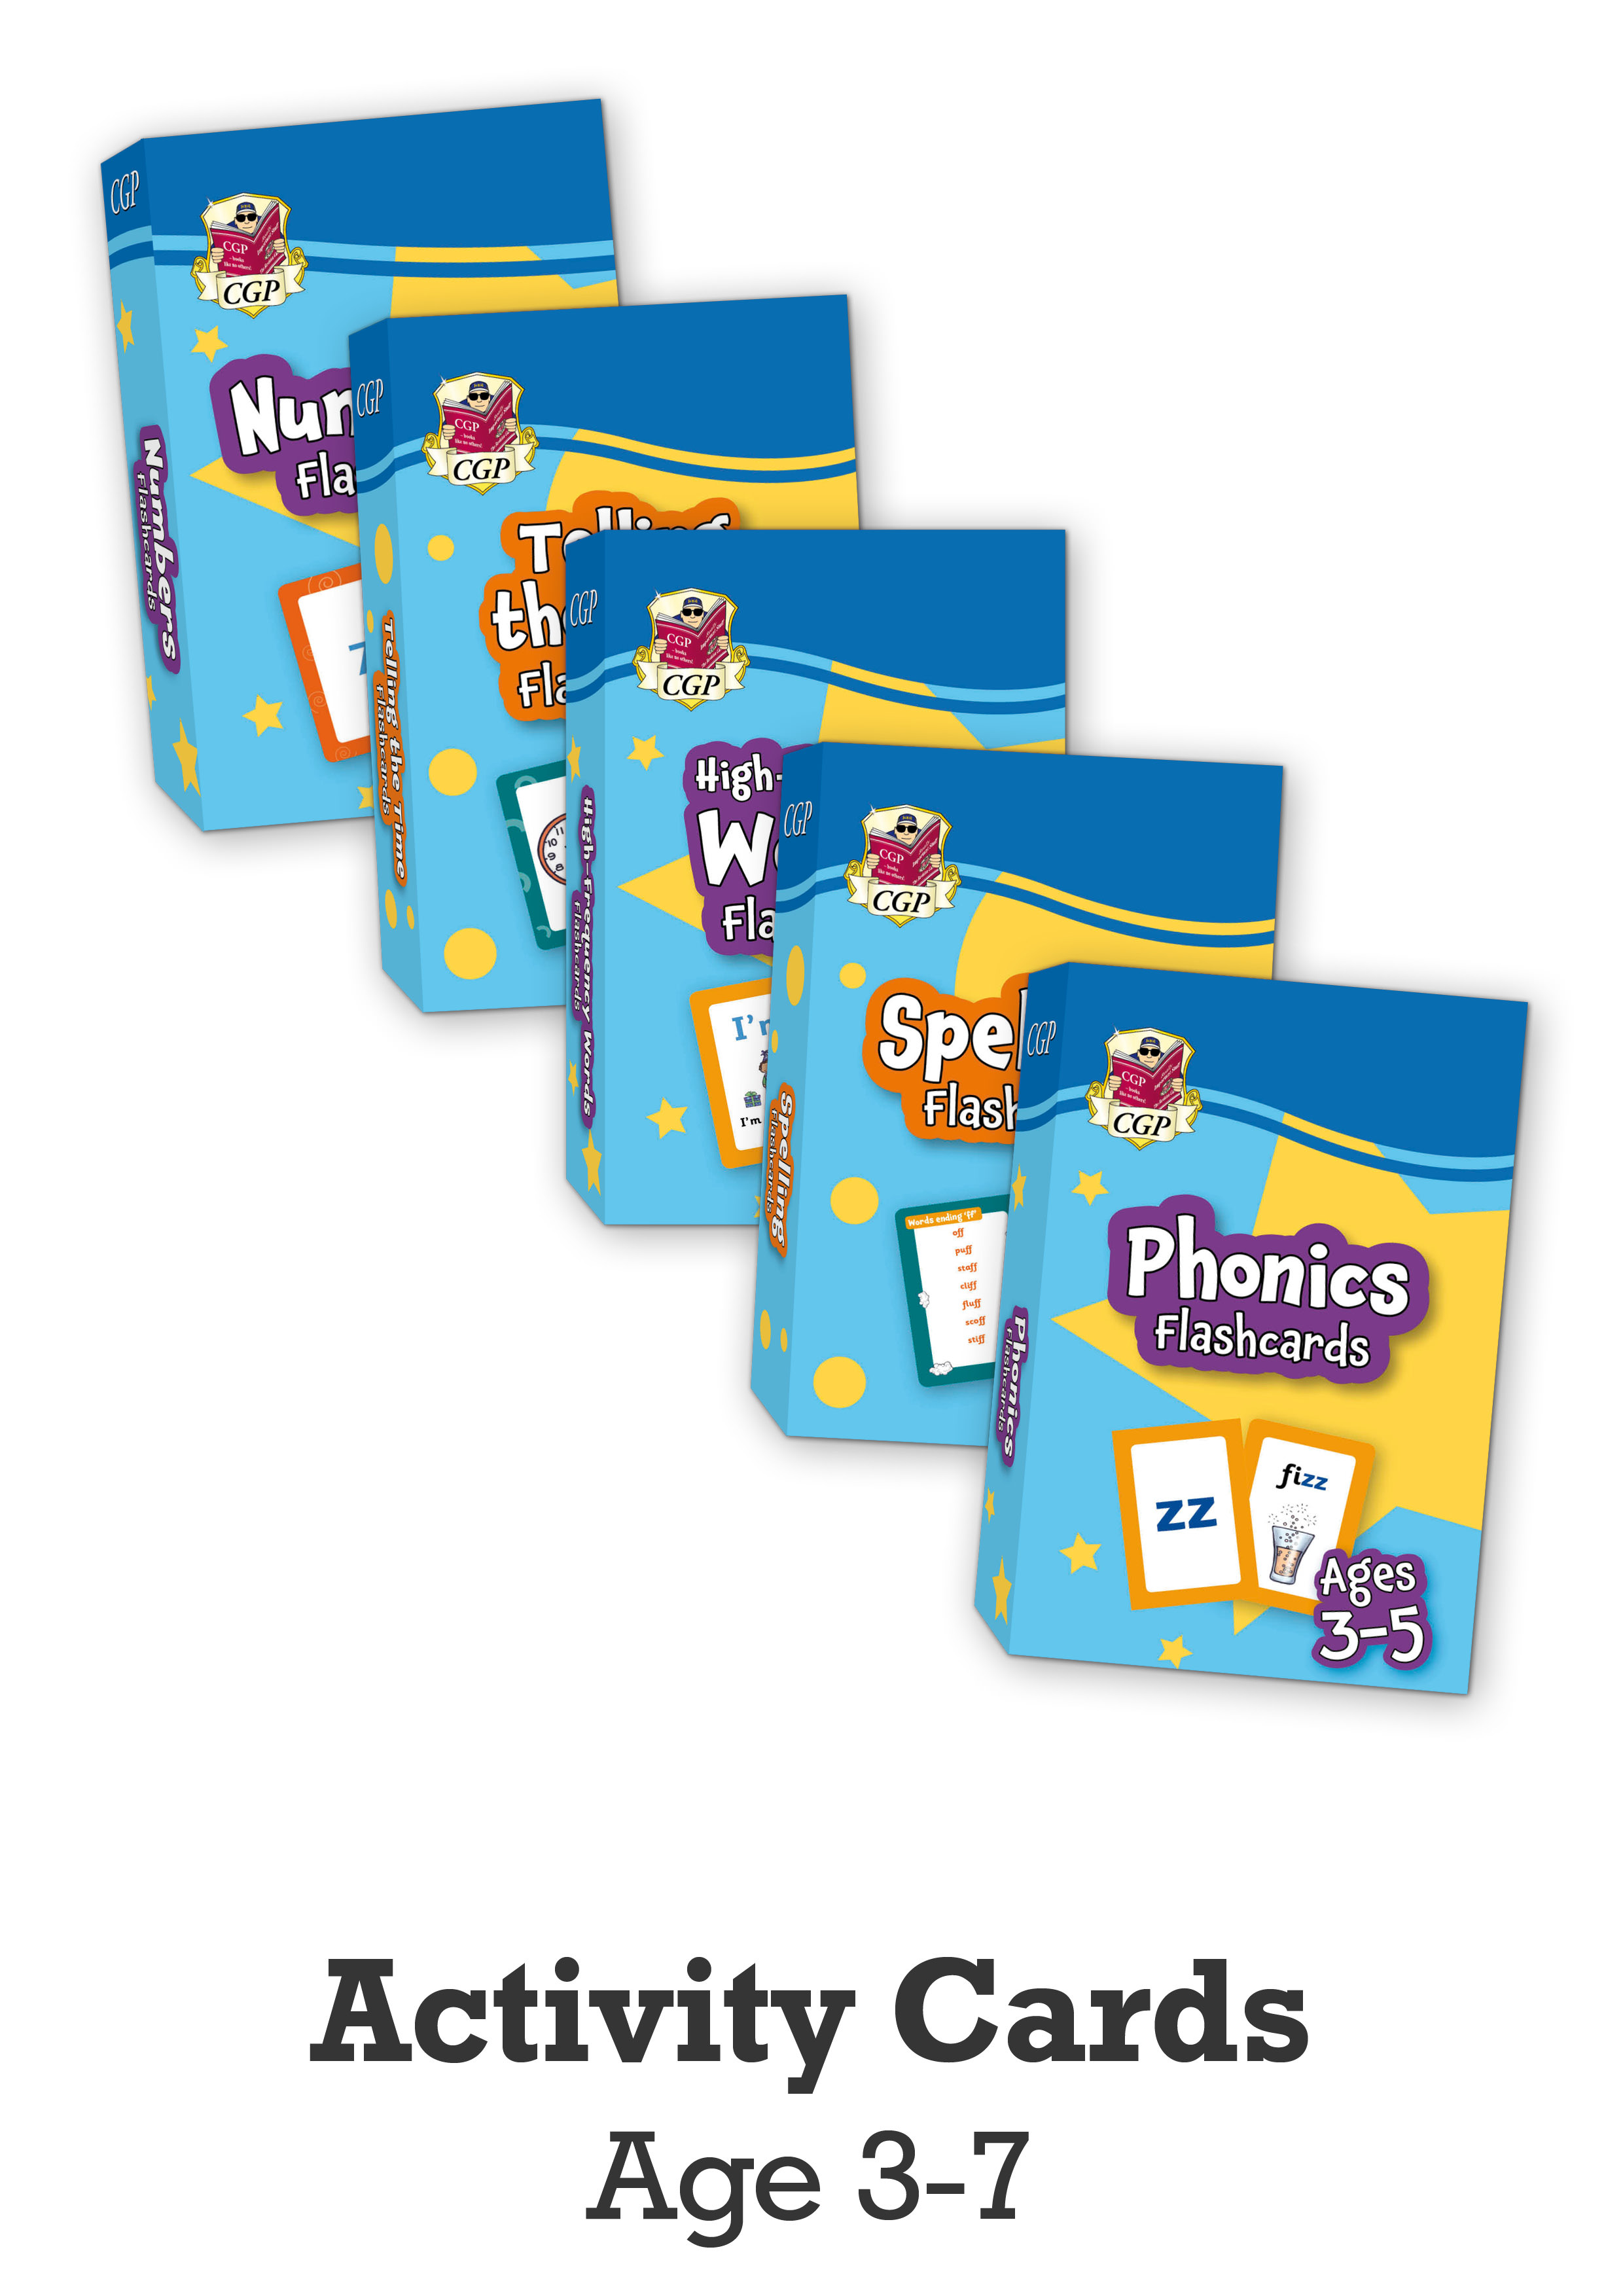 EMPFFB01 - New Fun Primary Flashcards - 5-Pack Bundle